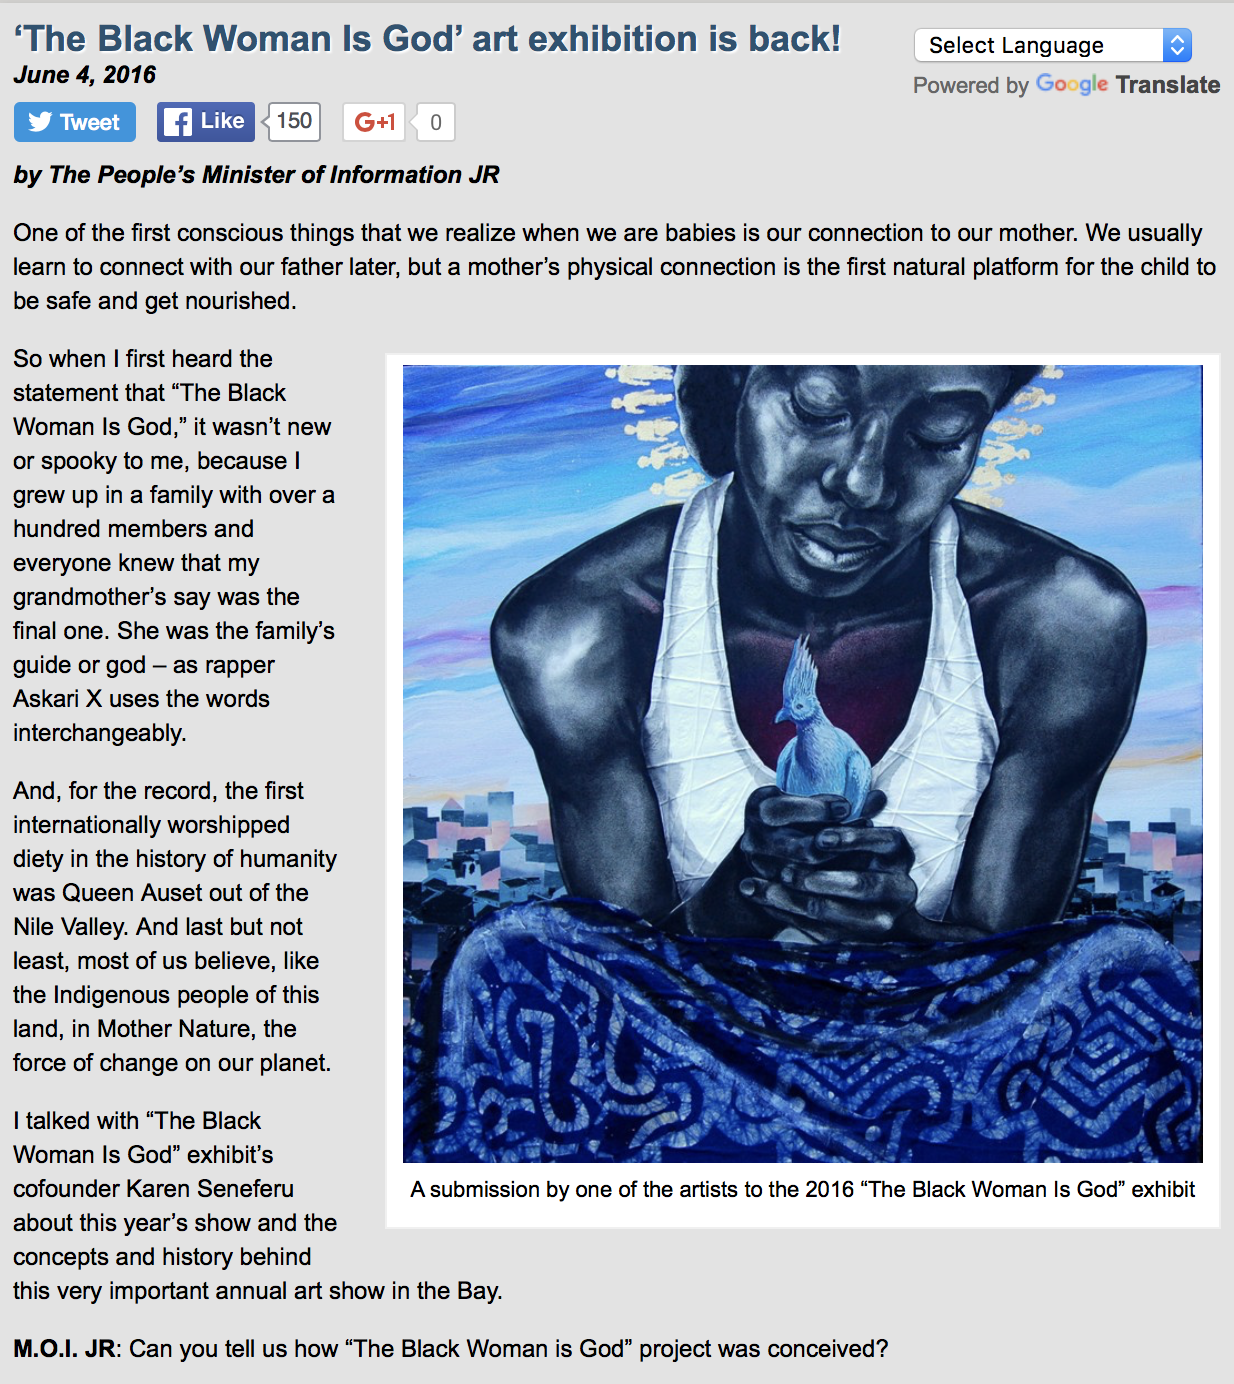 The San Francisco Bay View National Black Newspaper. Art and Culture.  'The Black Woman Is God' Art Exhibition Is Back!    Http://sfbayview.com  . N.p., 4 June 2016. Web. <http://sfbayview.com/2016/06/the-black-woman-is-god-art-exhibition-is-back/>.